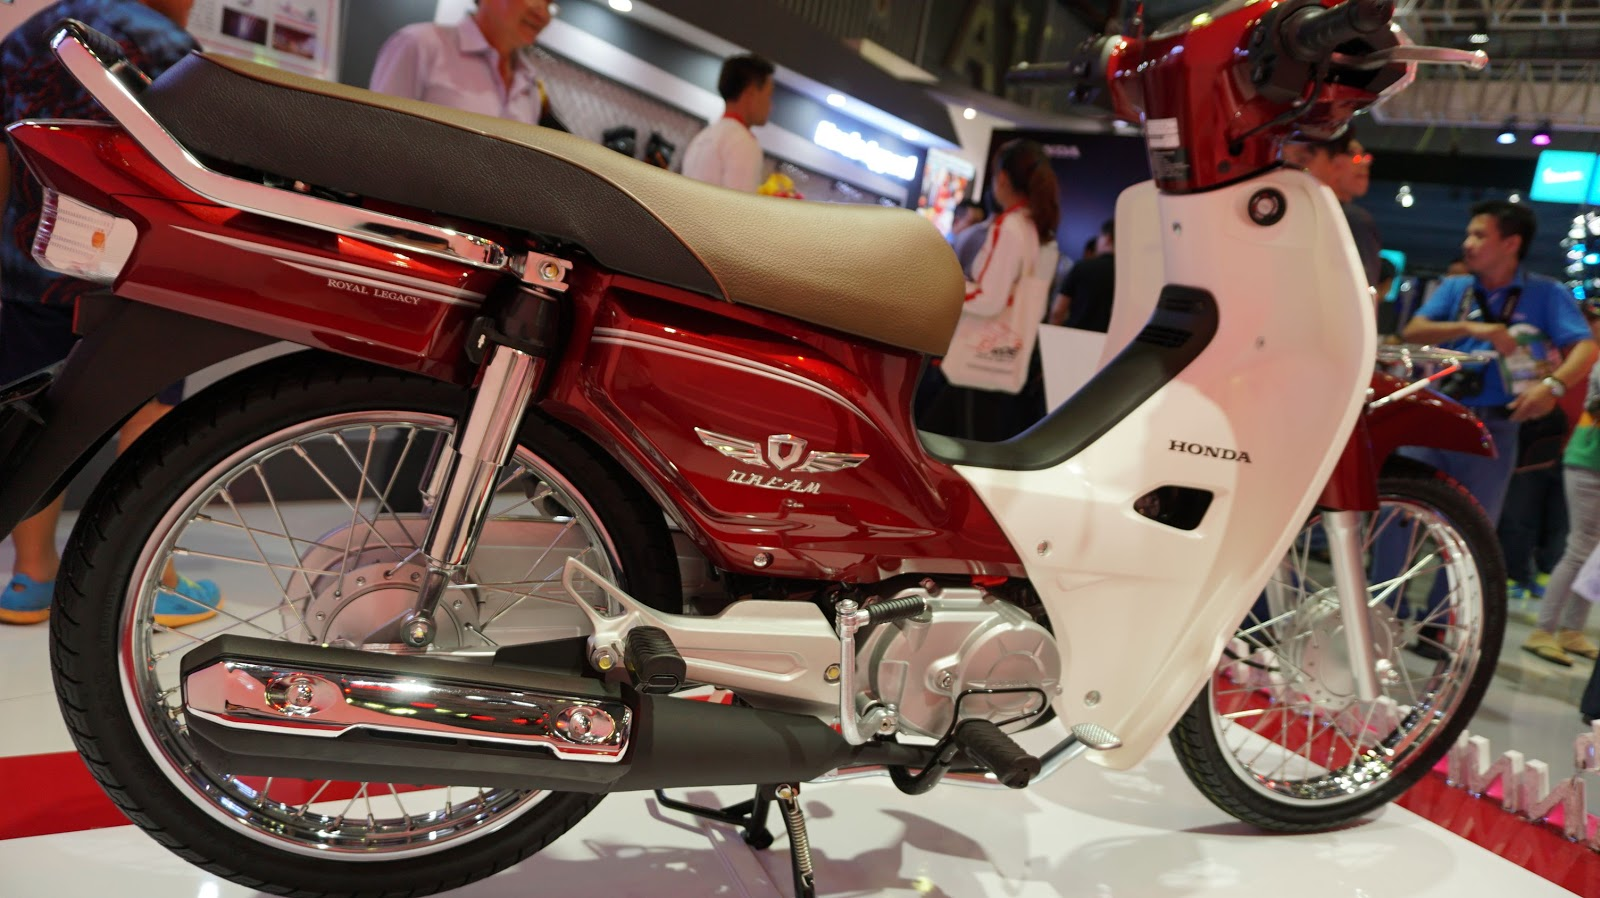 Honda Super Dream